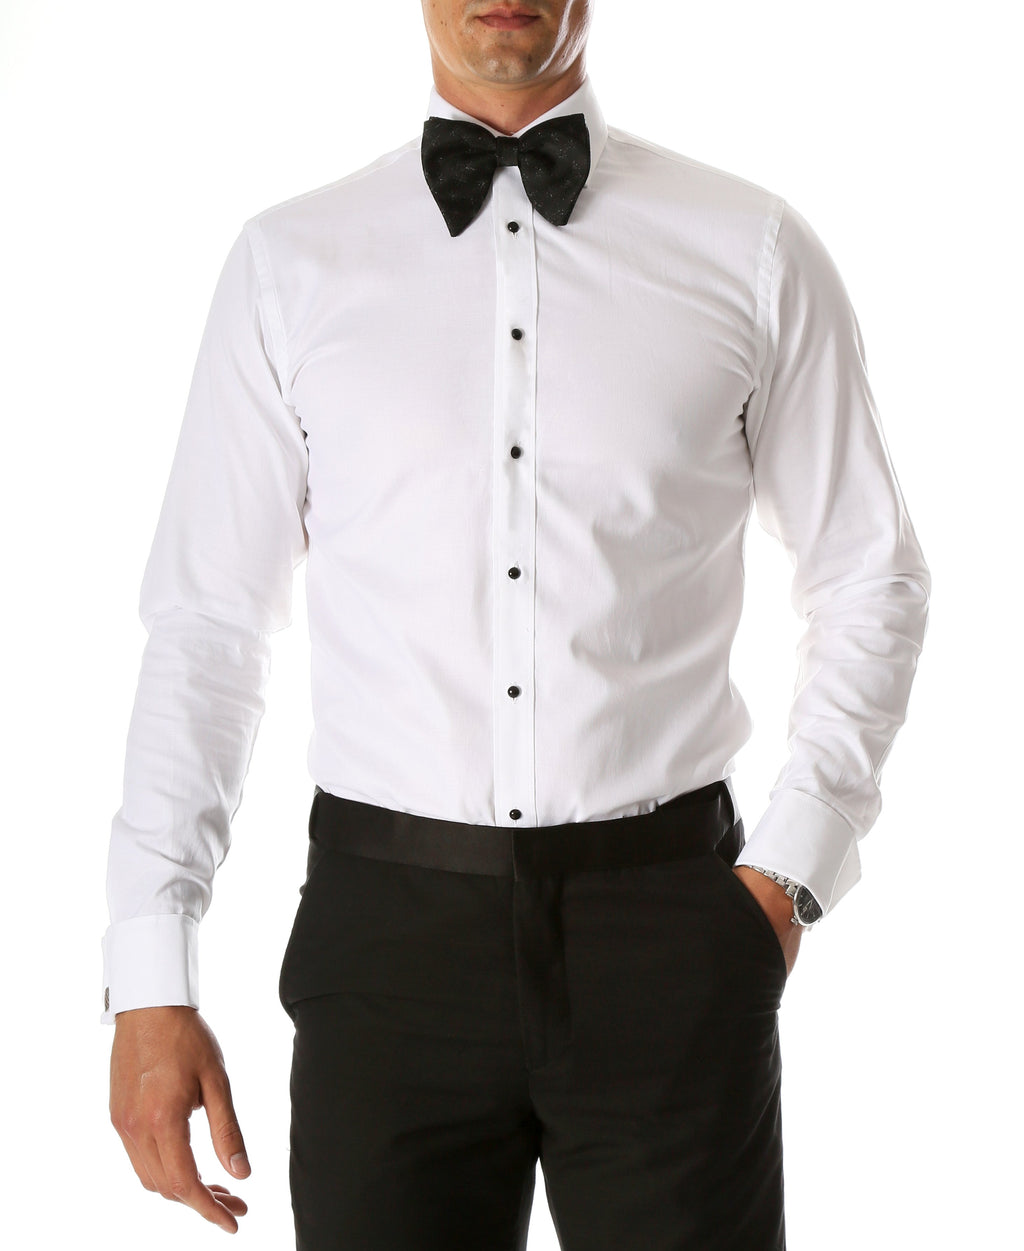 Ferrecci Men's White Venice Slim Fit Pique Lay Down Collar Shirt - Giorgio's Menswear